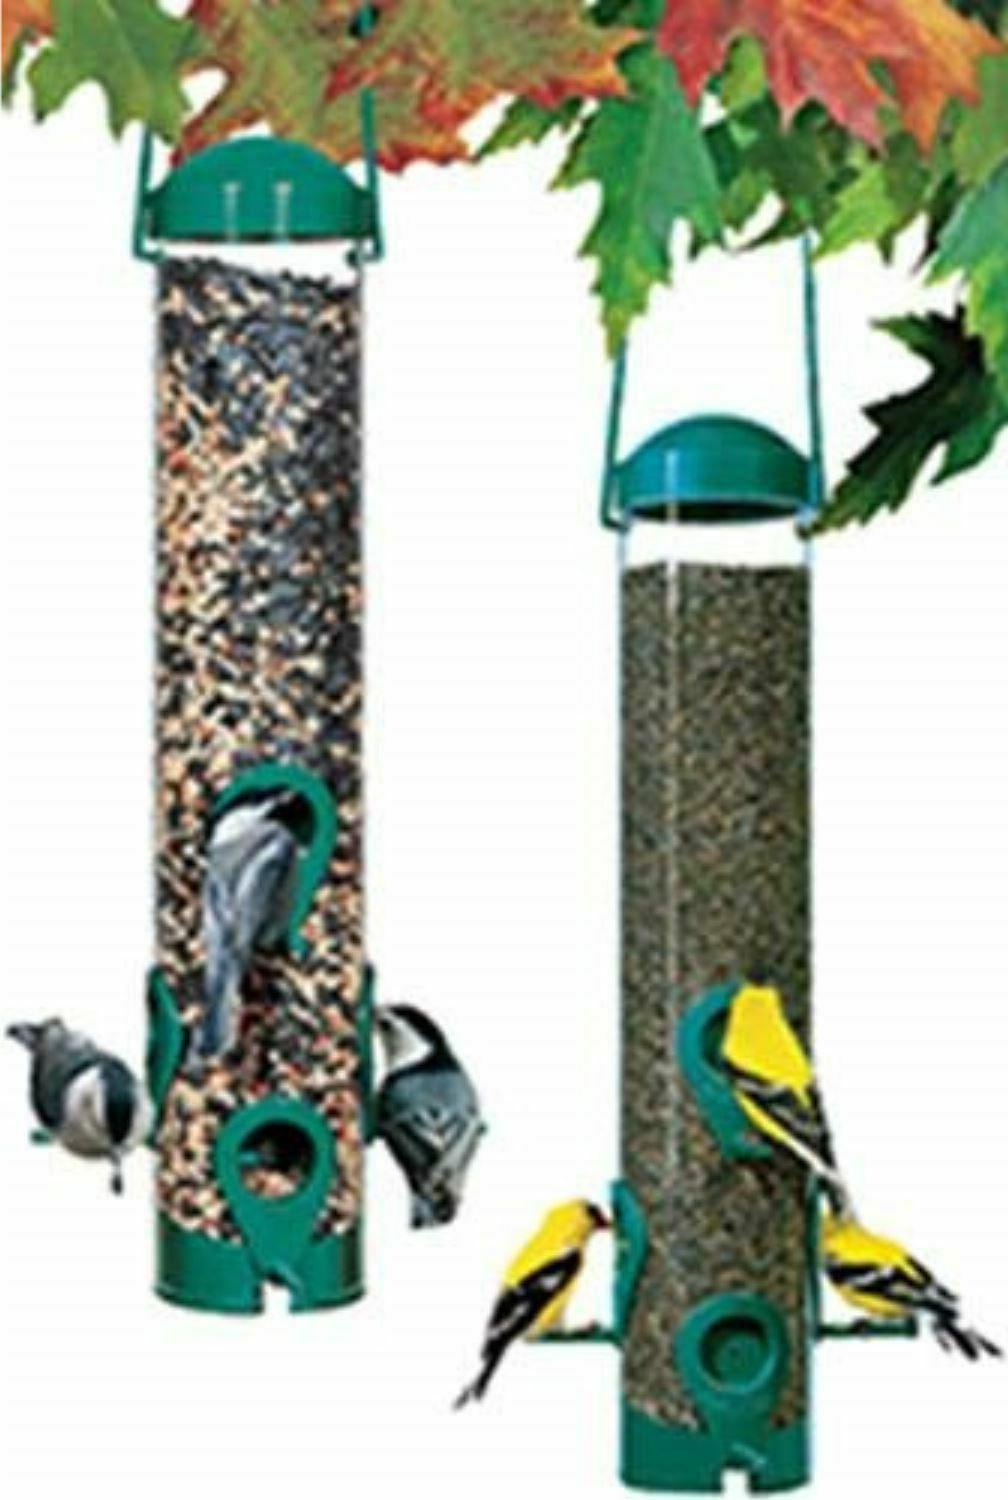 Garden Squirrel Proof Wild Bird Seed Outdoor